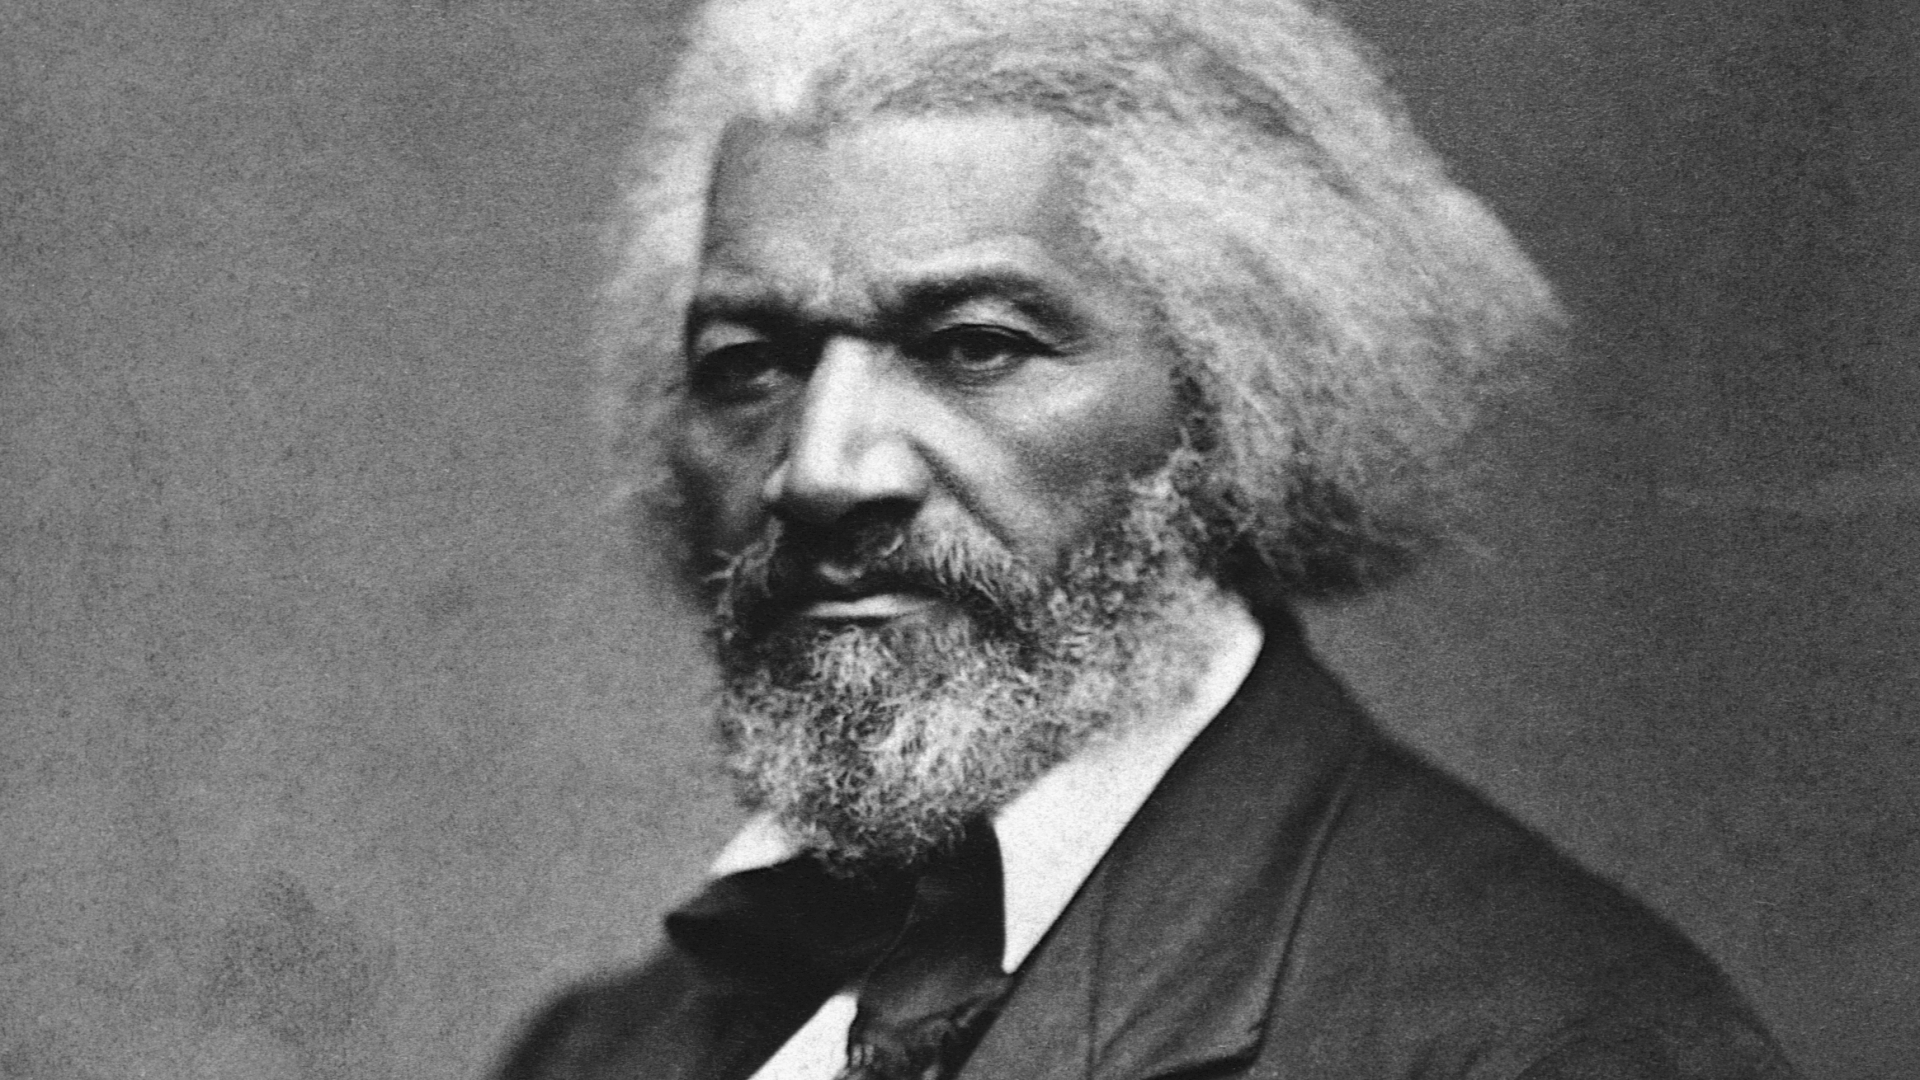 American abolitionist and former slave Frederick Douglass. (Credit: Corbis/Getty Images)